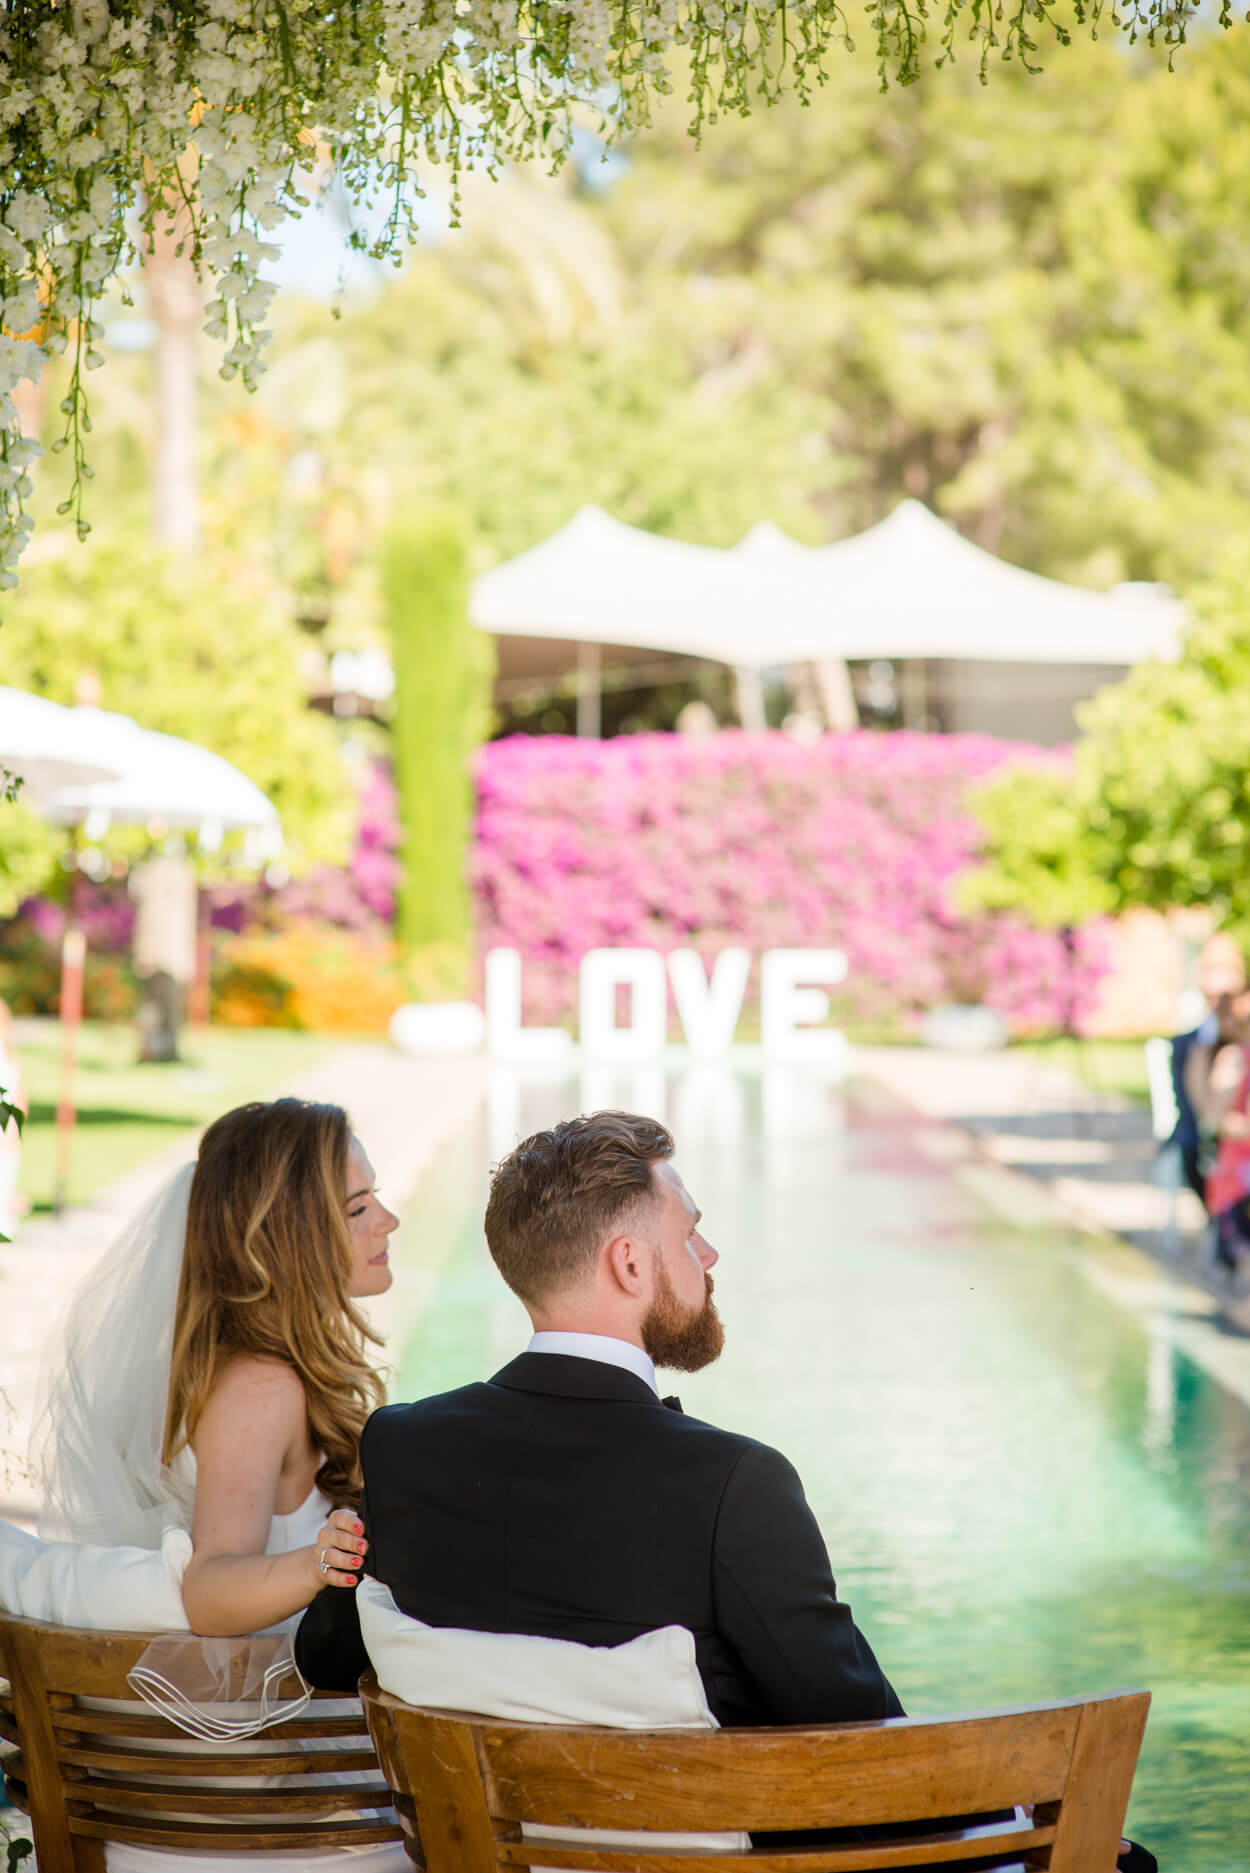 poolside wedding ceremony palm trees love sign